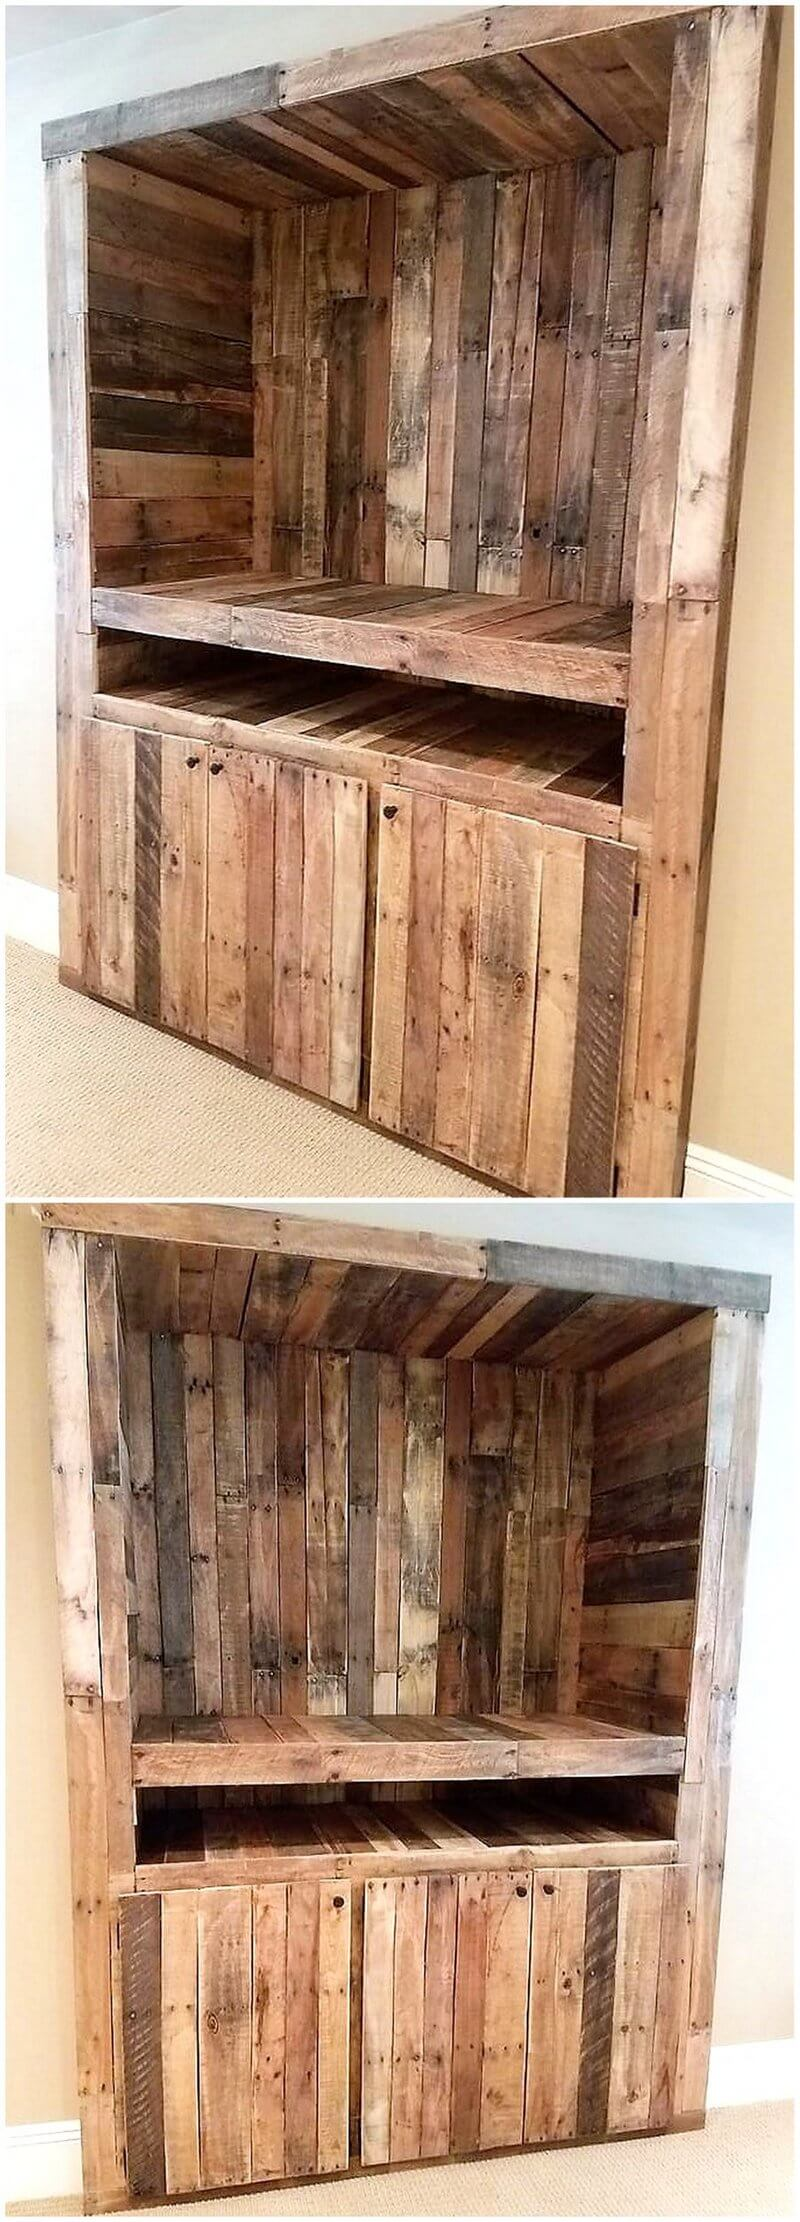 80 Creative Pallet Recycling Ideas And Plans Wood Pallet Creations